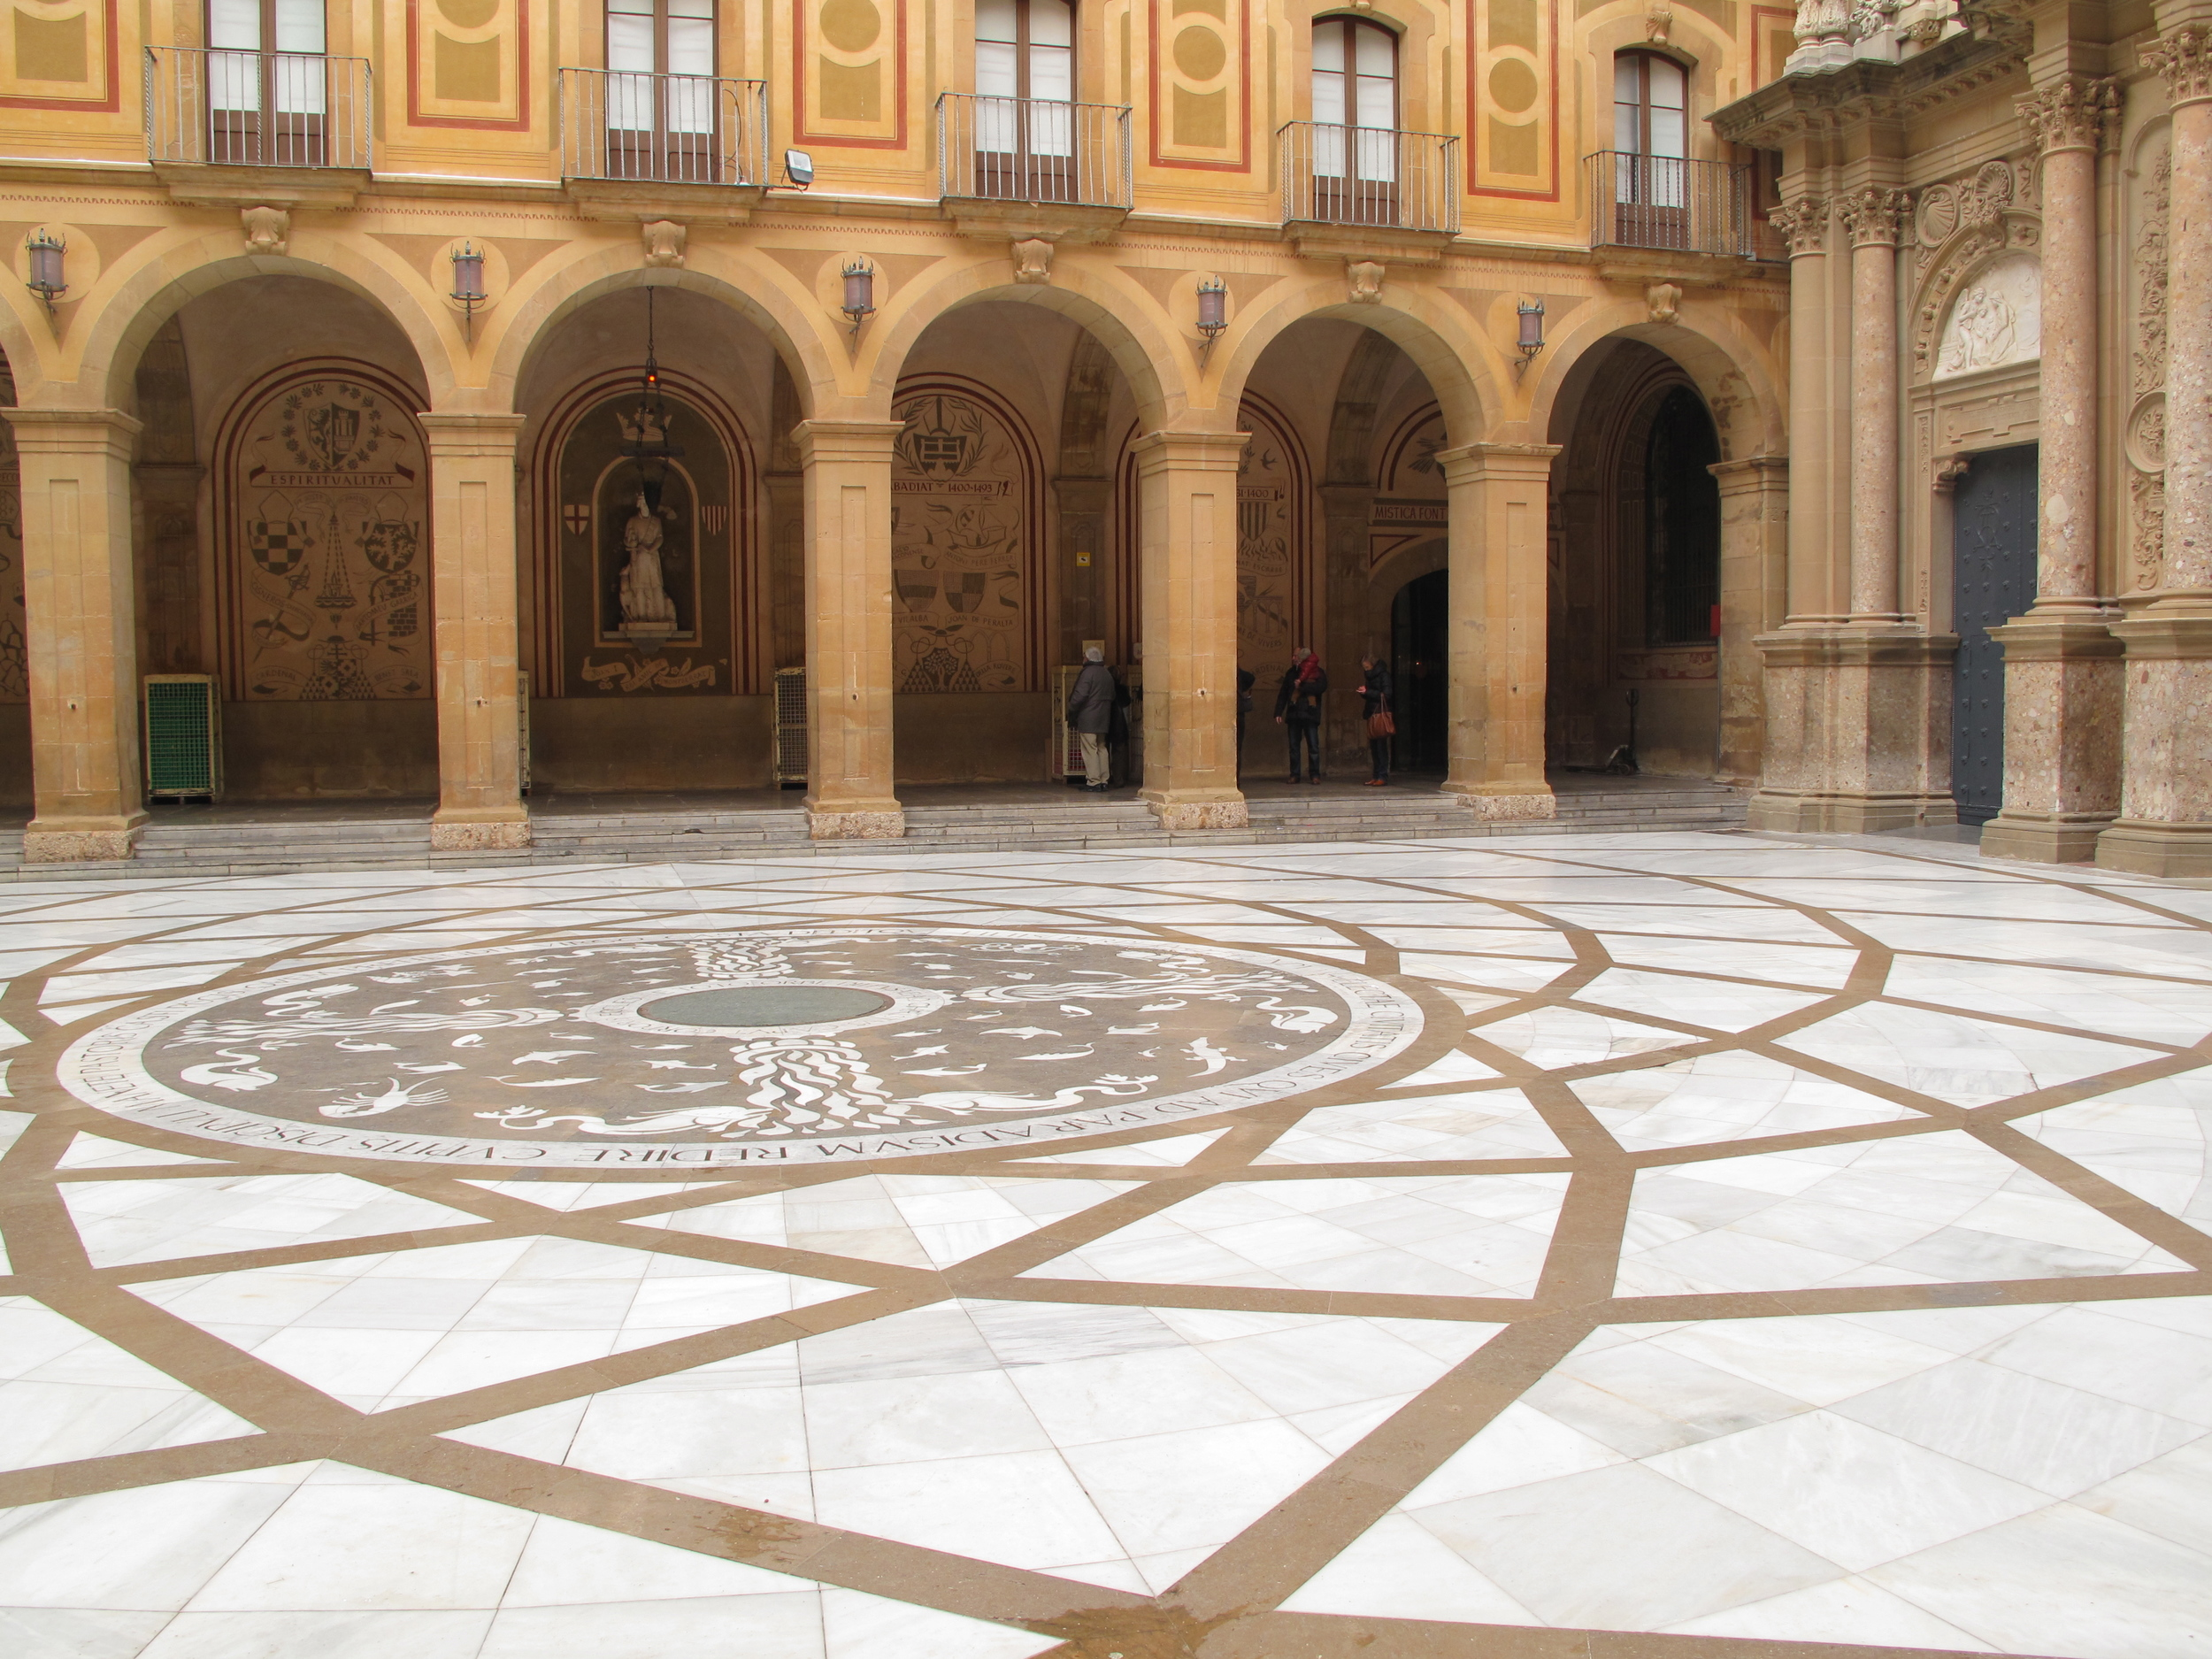 Courtyard and tile patterns at the Montserrat monastery.